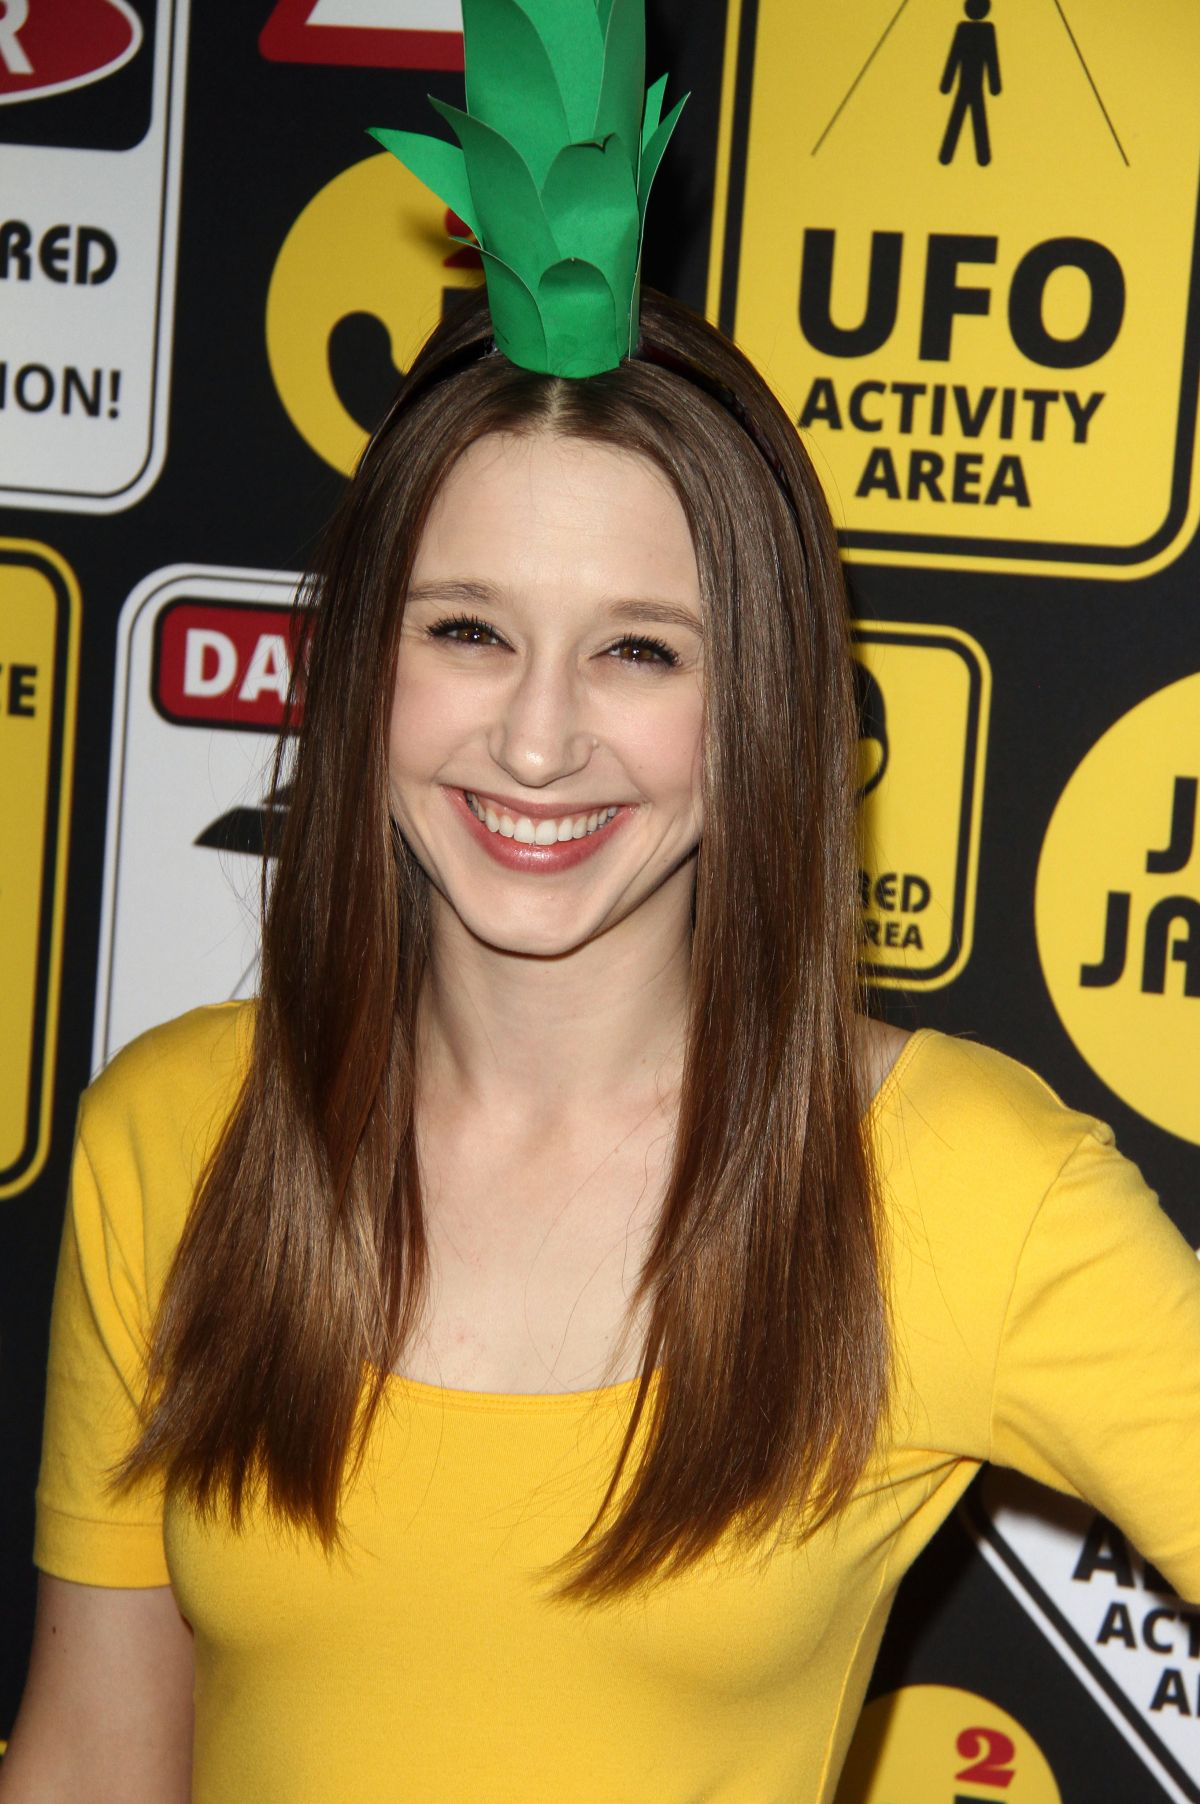 TAISSA FARMIGA at Just Jared